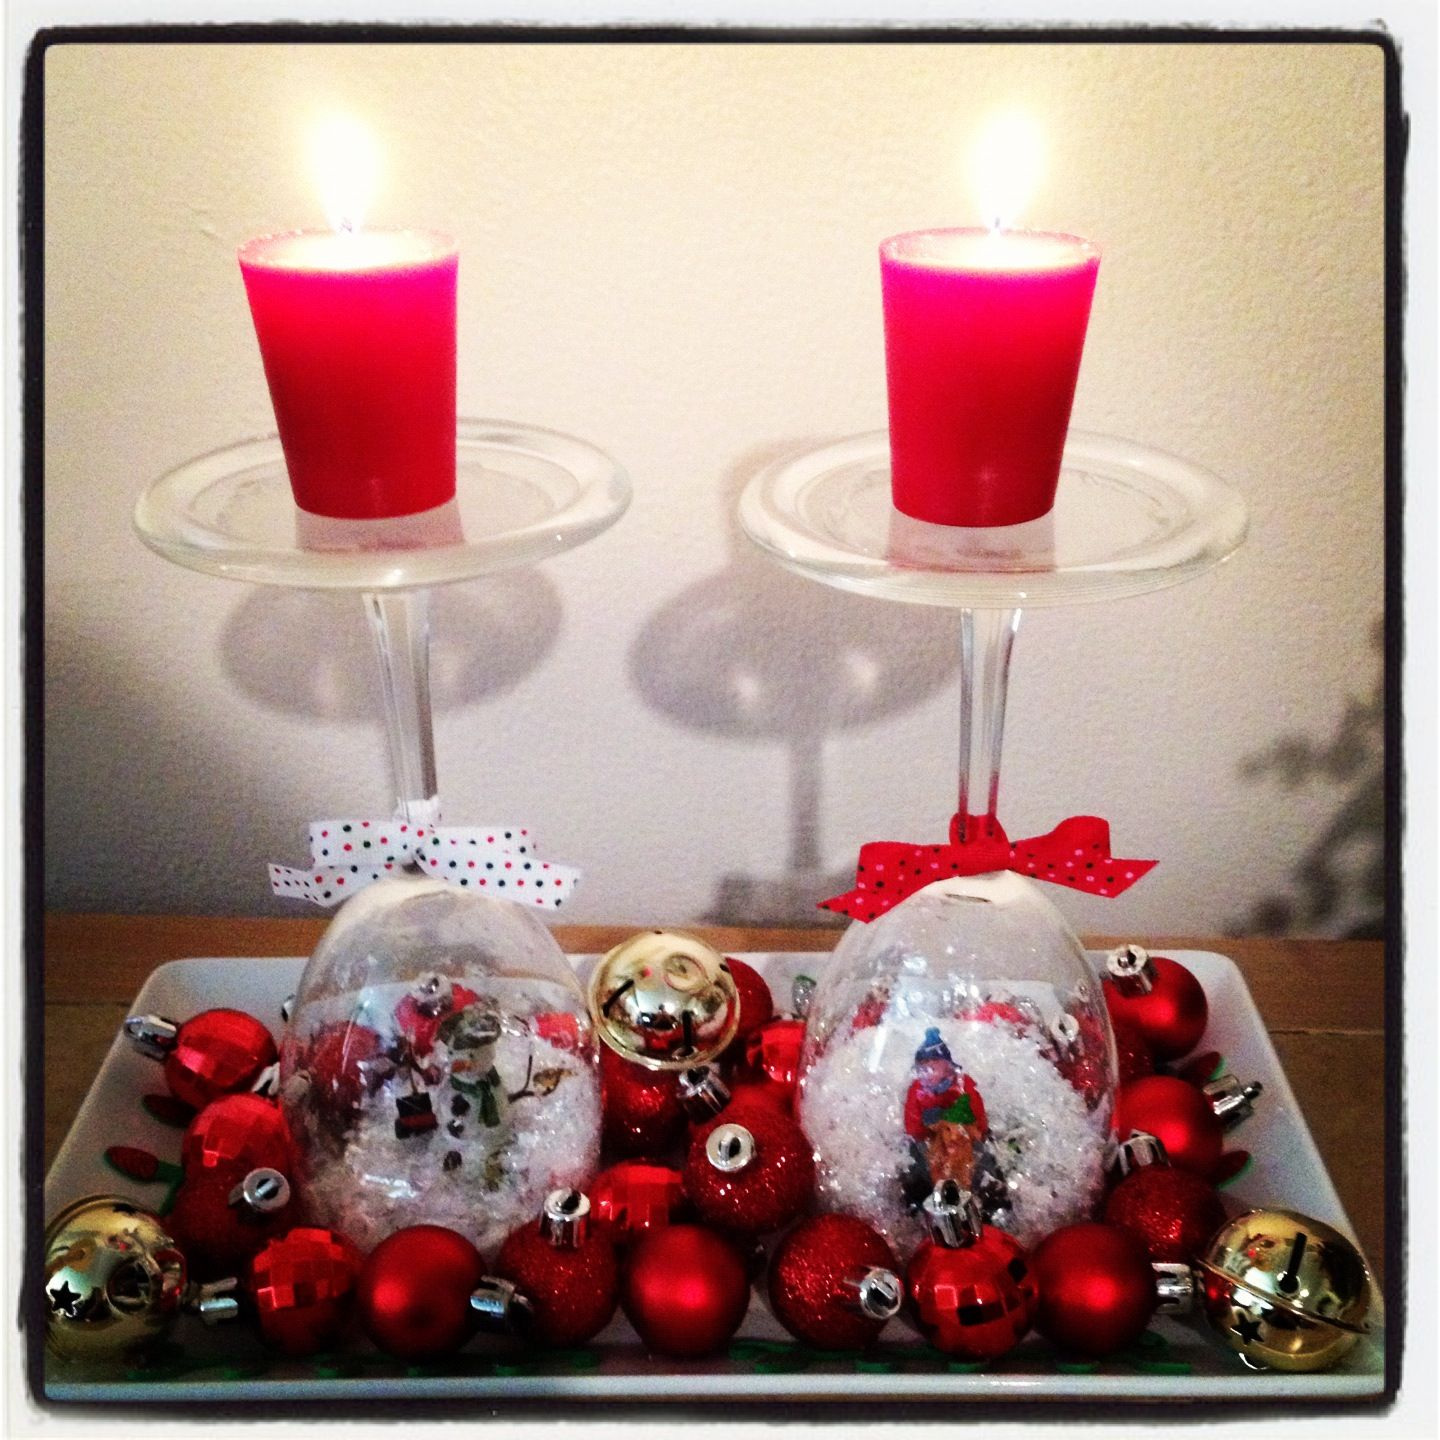 Christmas Decorations With Wine Glasses: Snow Globe Wine Glasses With Candles And Mini Ornaments